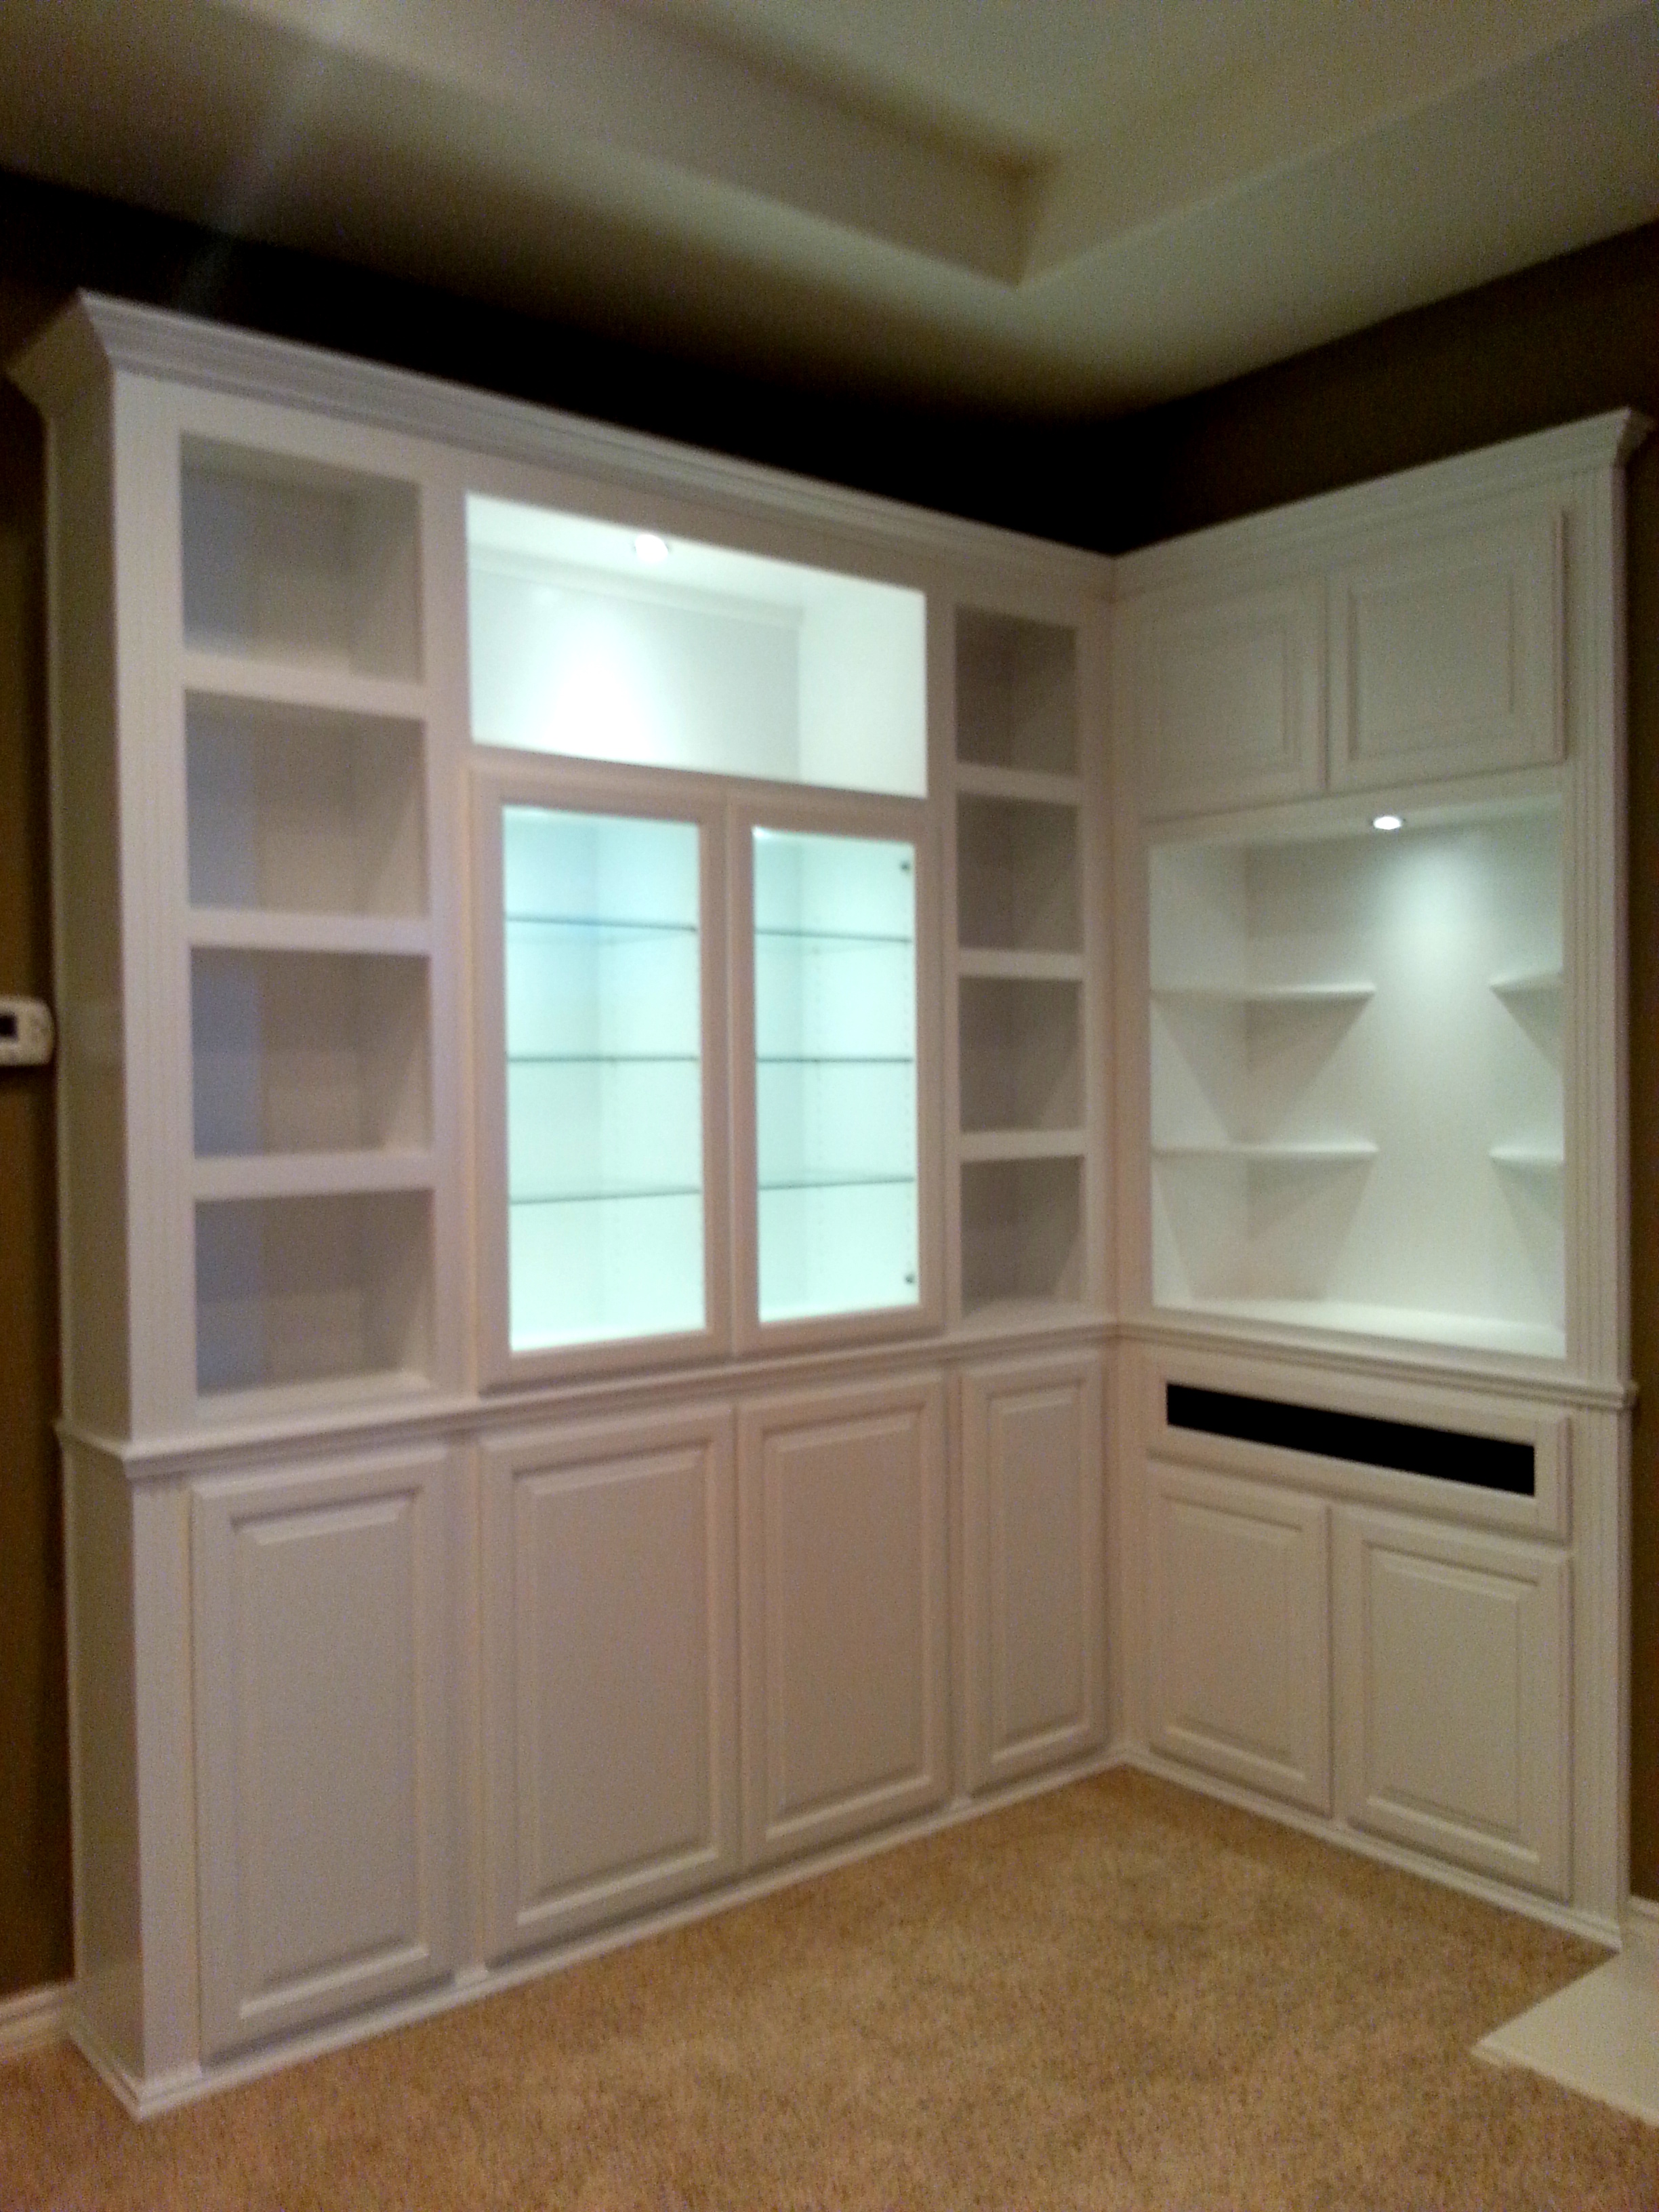 anaheim kitchen cabinets counter height table and chairs built in white corner | c & l design specialists inc